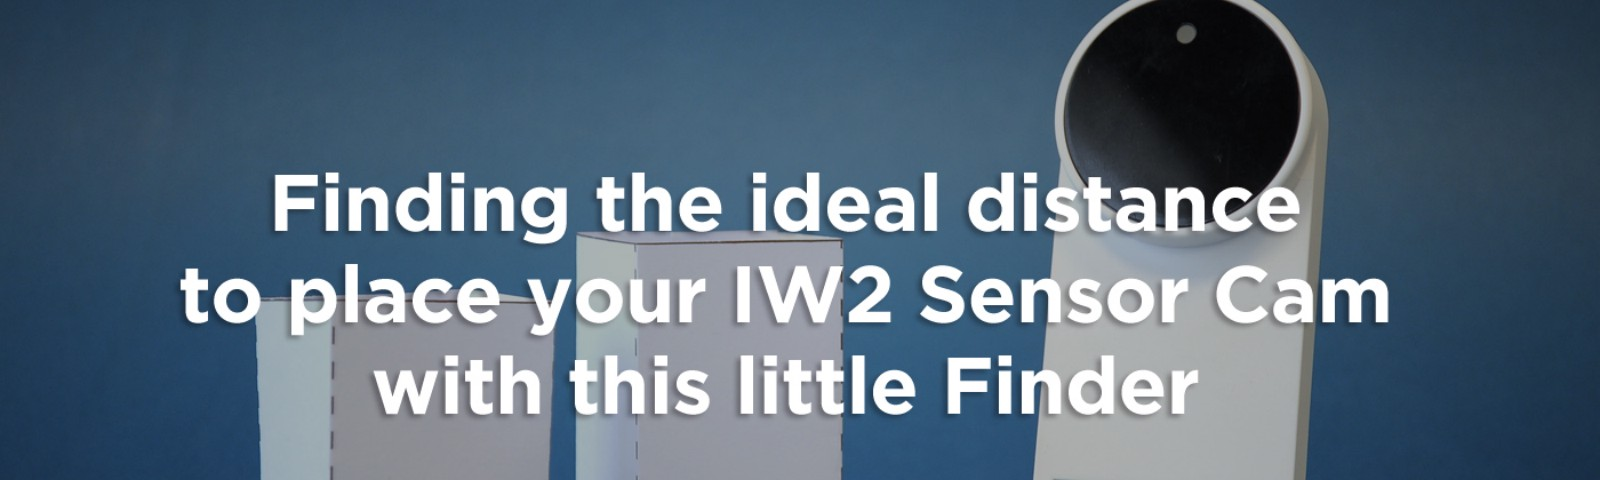 Finding the ideal distance to place your IW2 Sensor Cam with this little Finder